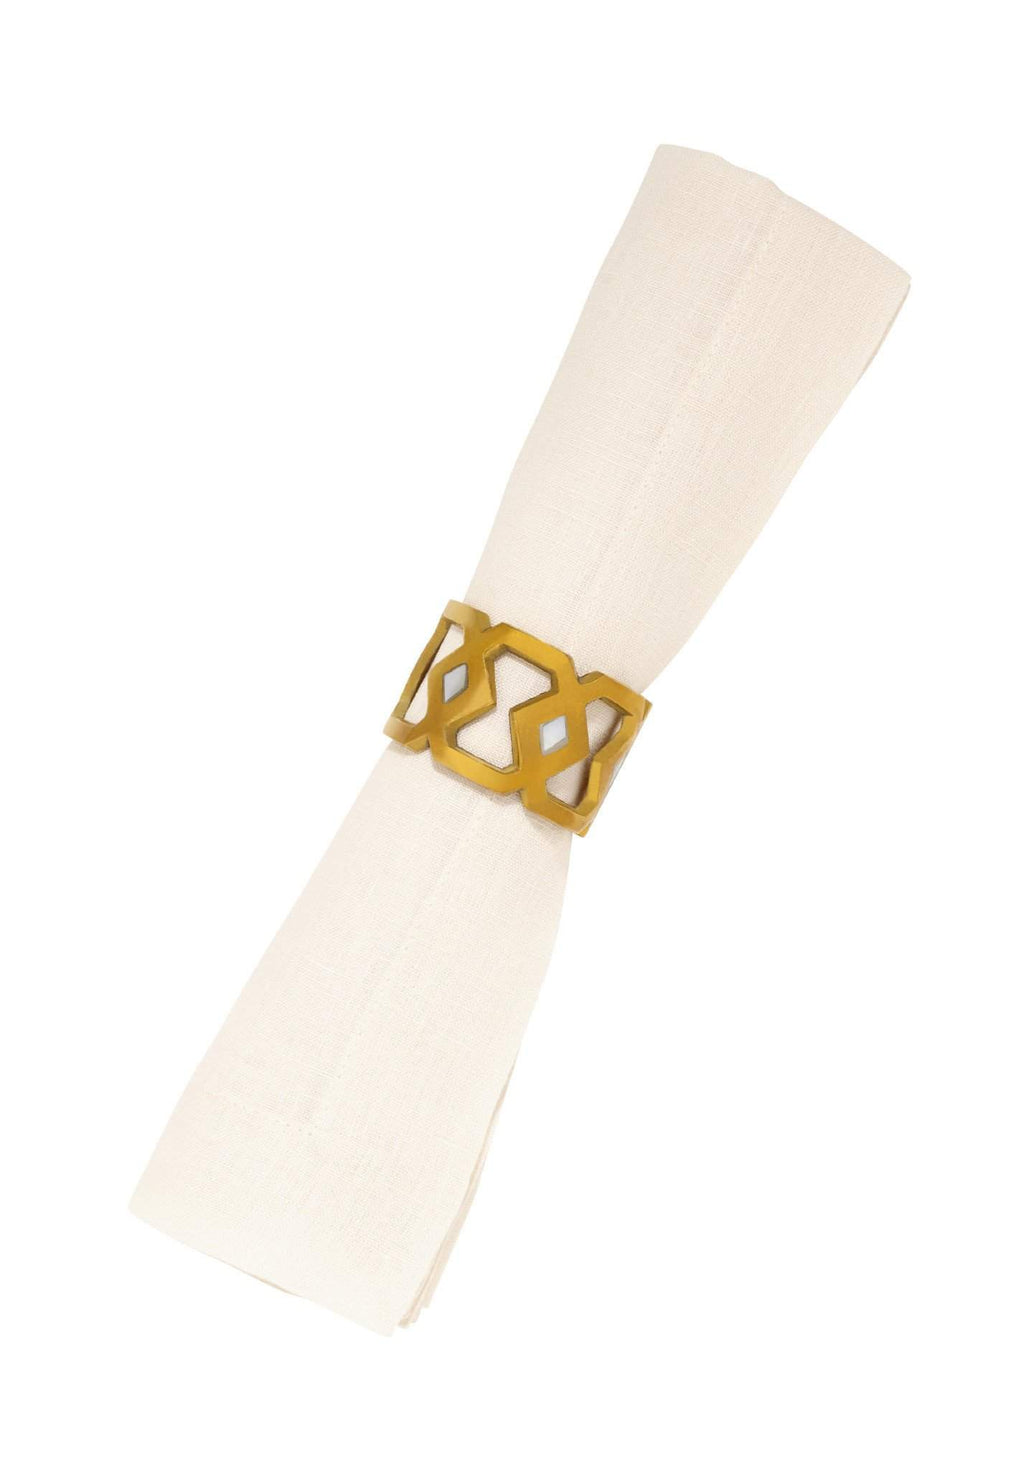 Monroe Napkin Ring in Brass & Mother of Pearl